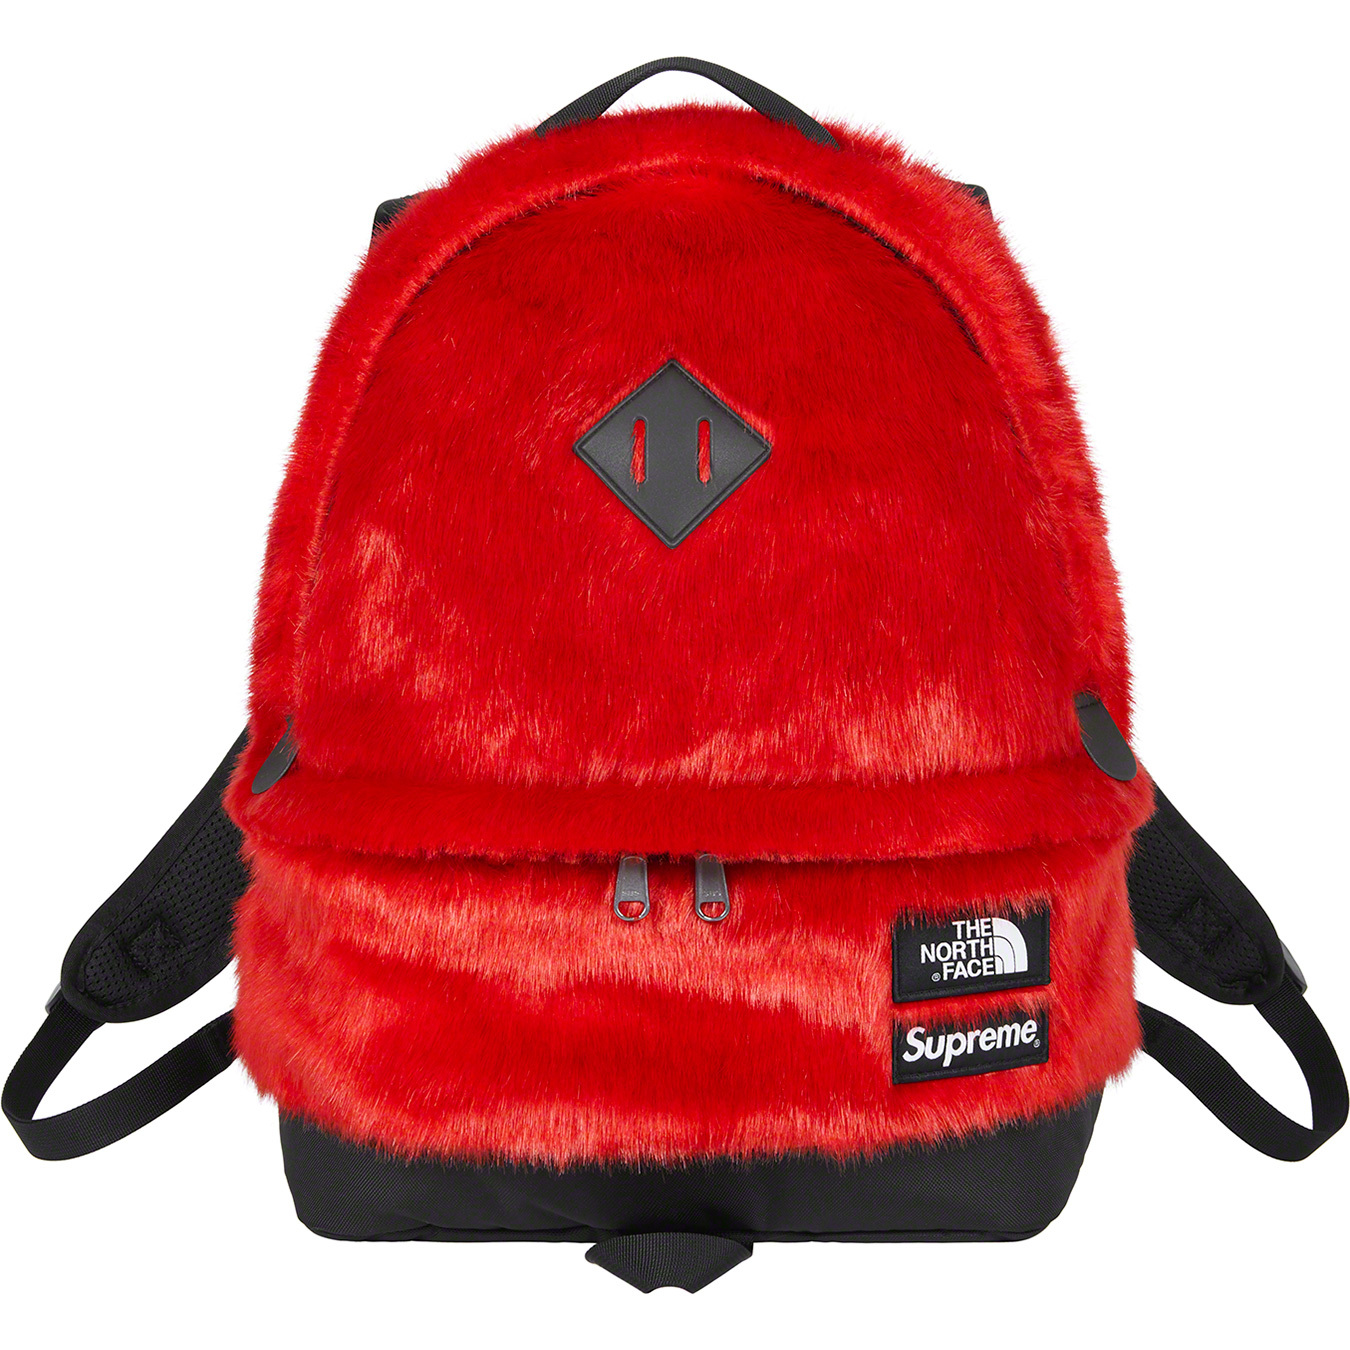 supreme-the-north-face-Faux-fur-backpack-20aw-20fw